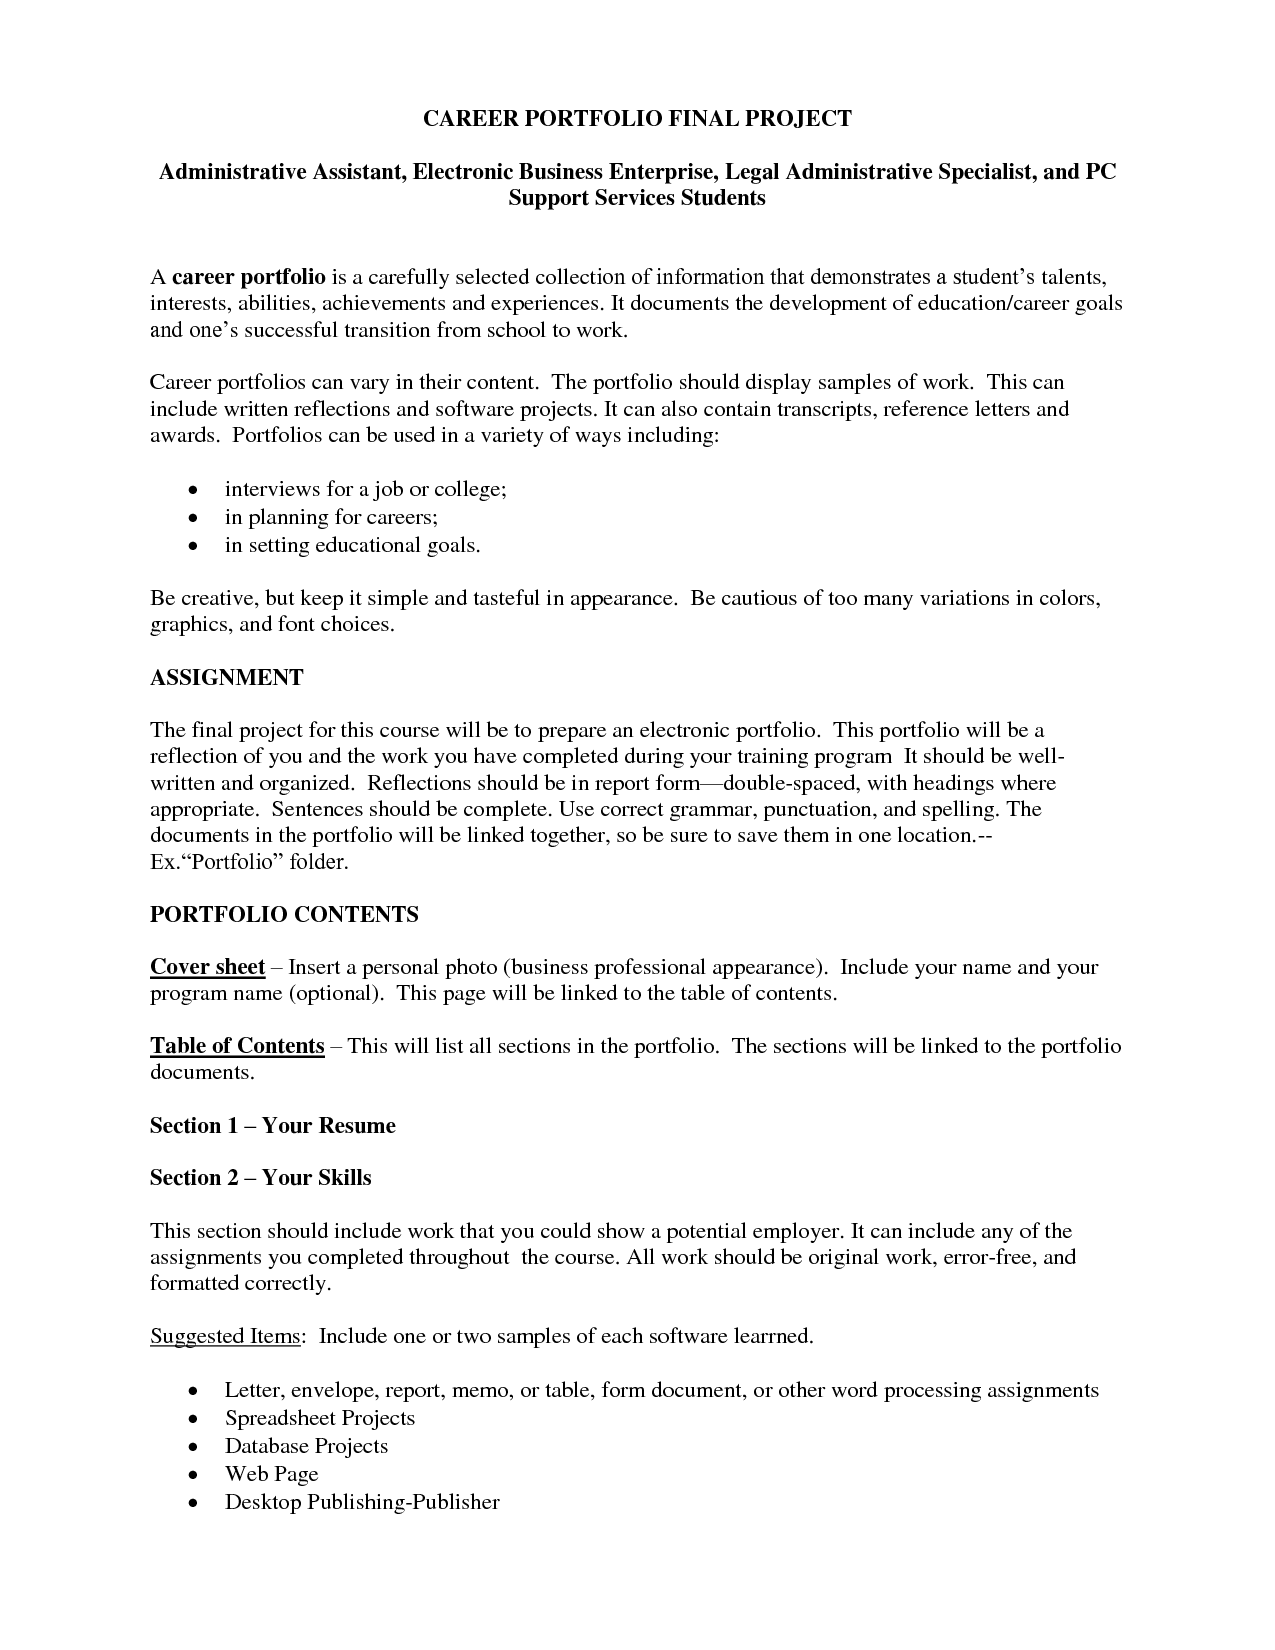 Administrative Resume Sample Legal Administrative Resume Samples  Httpersumelegal